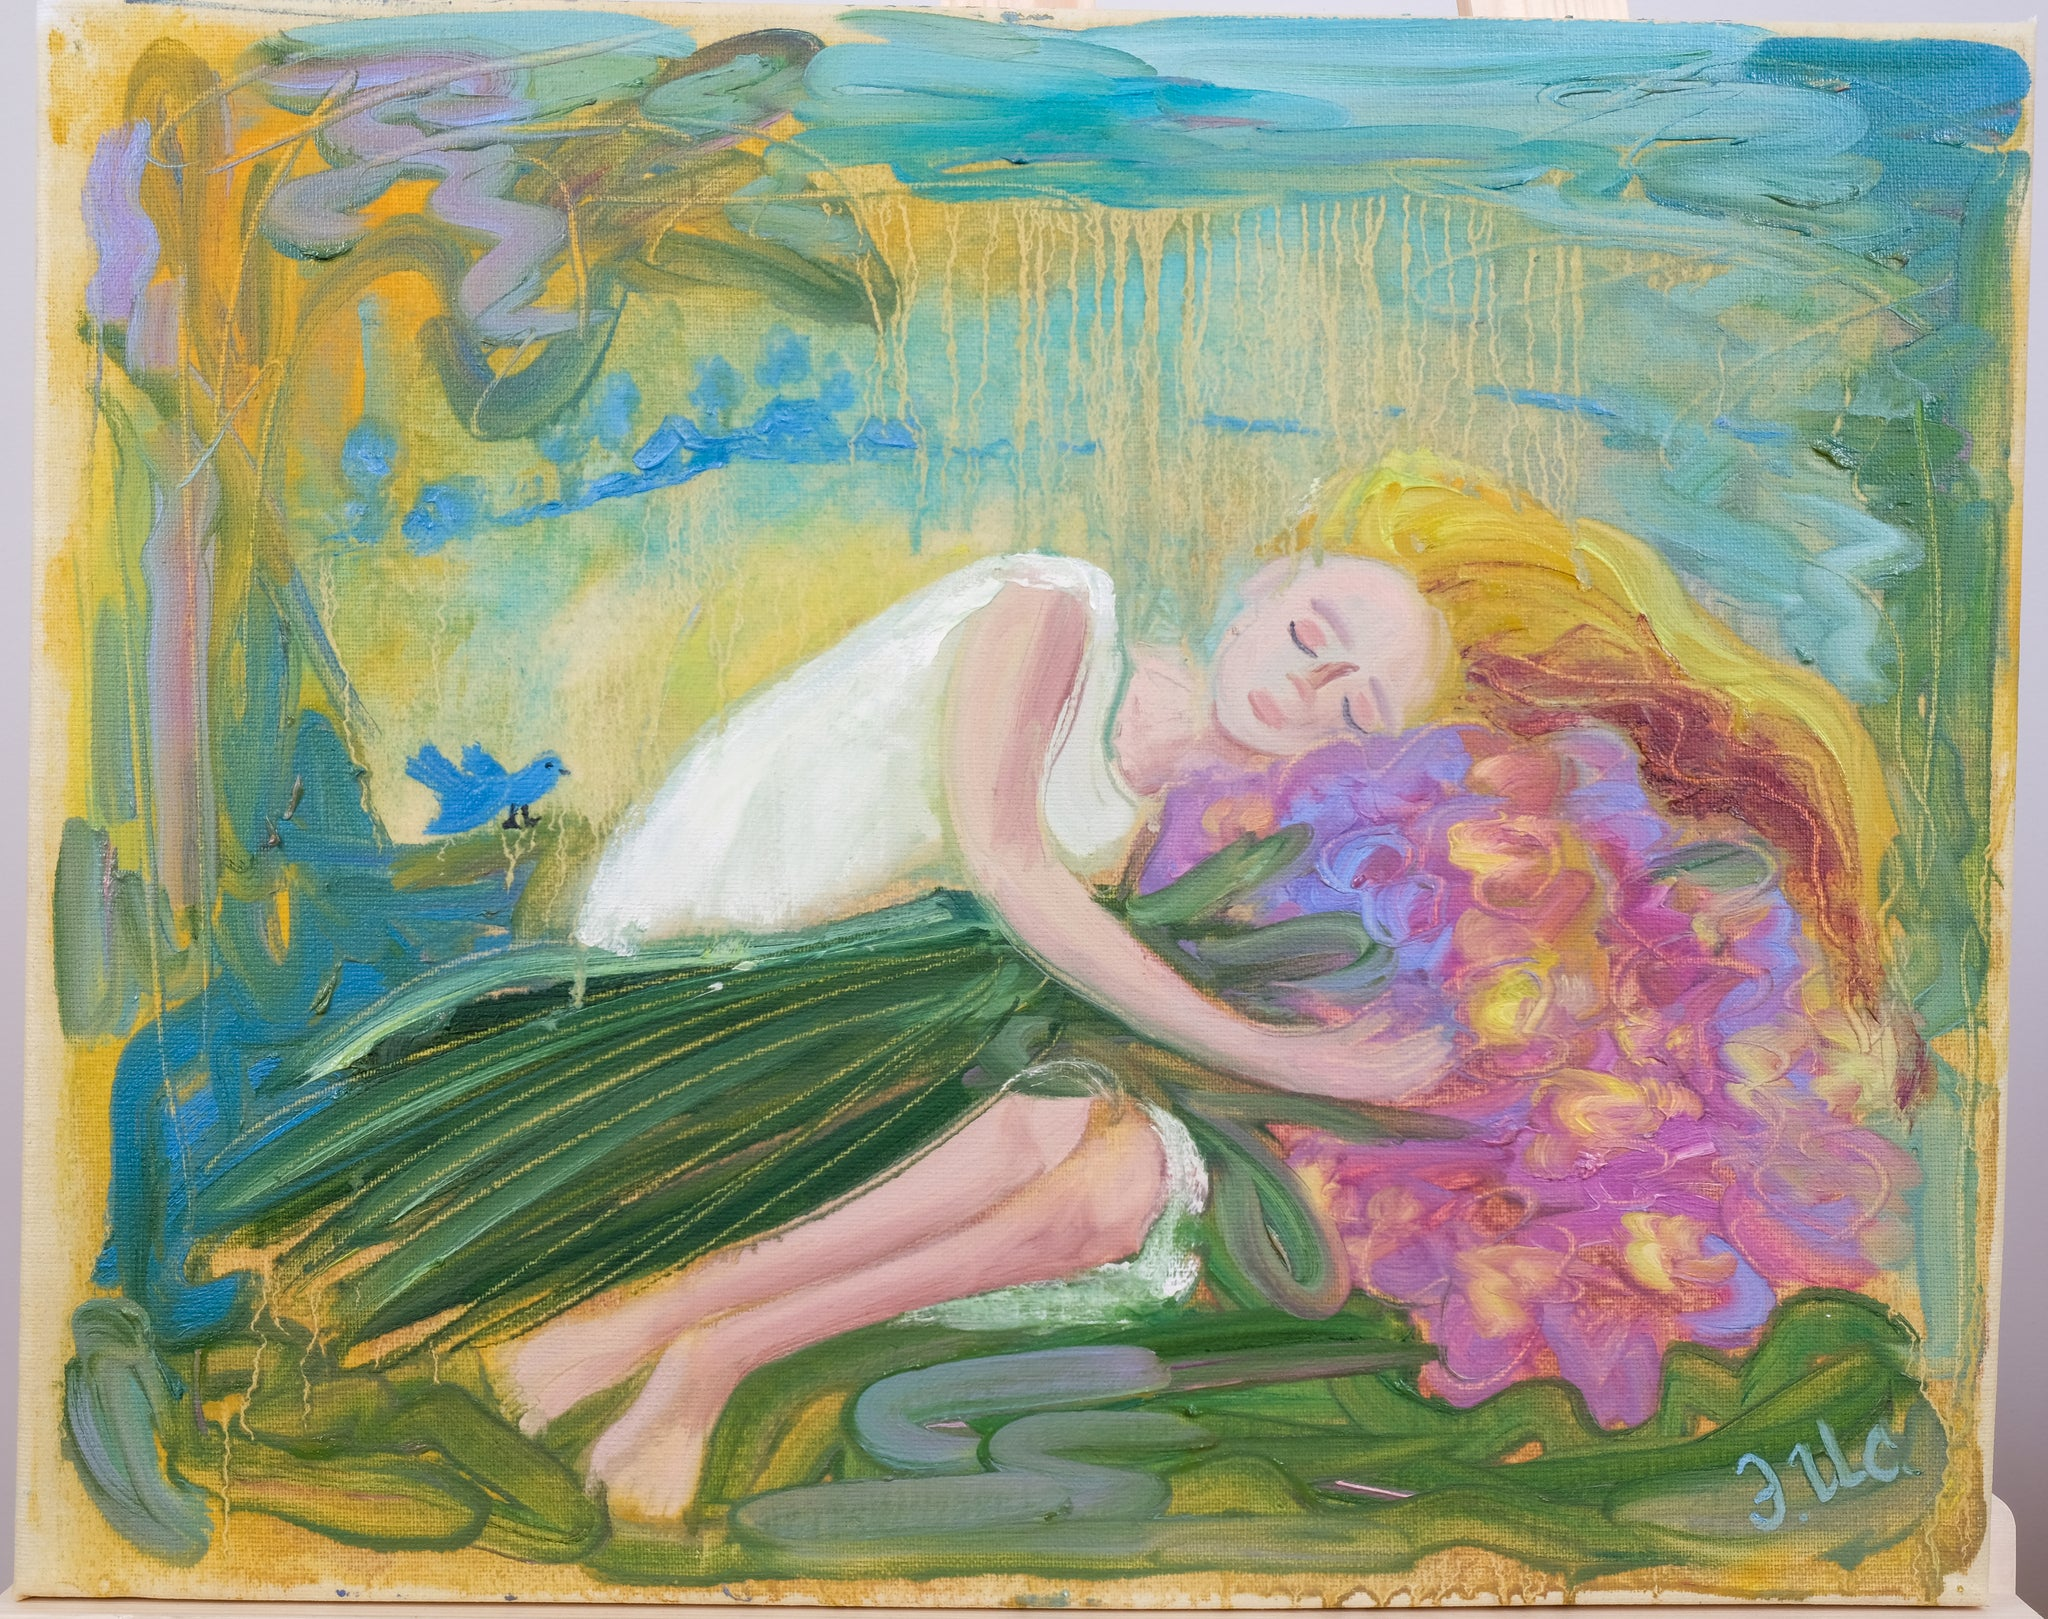 Sweet afternoon dream by Elvira Isaeva, 40cm*50cm, oil painting